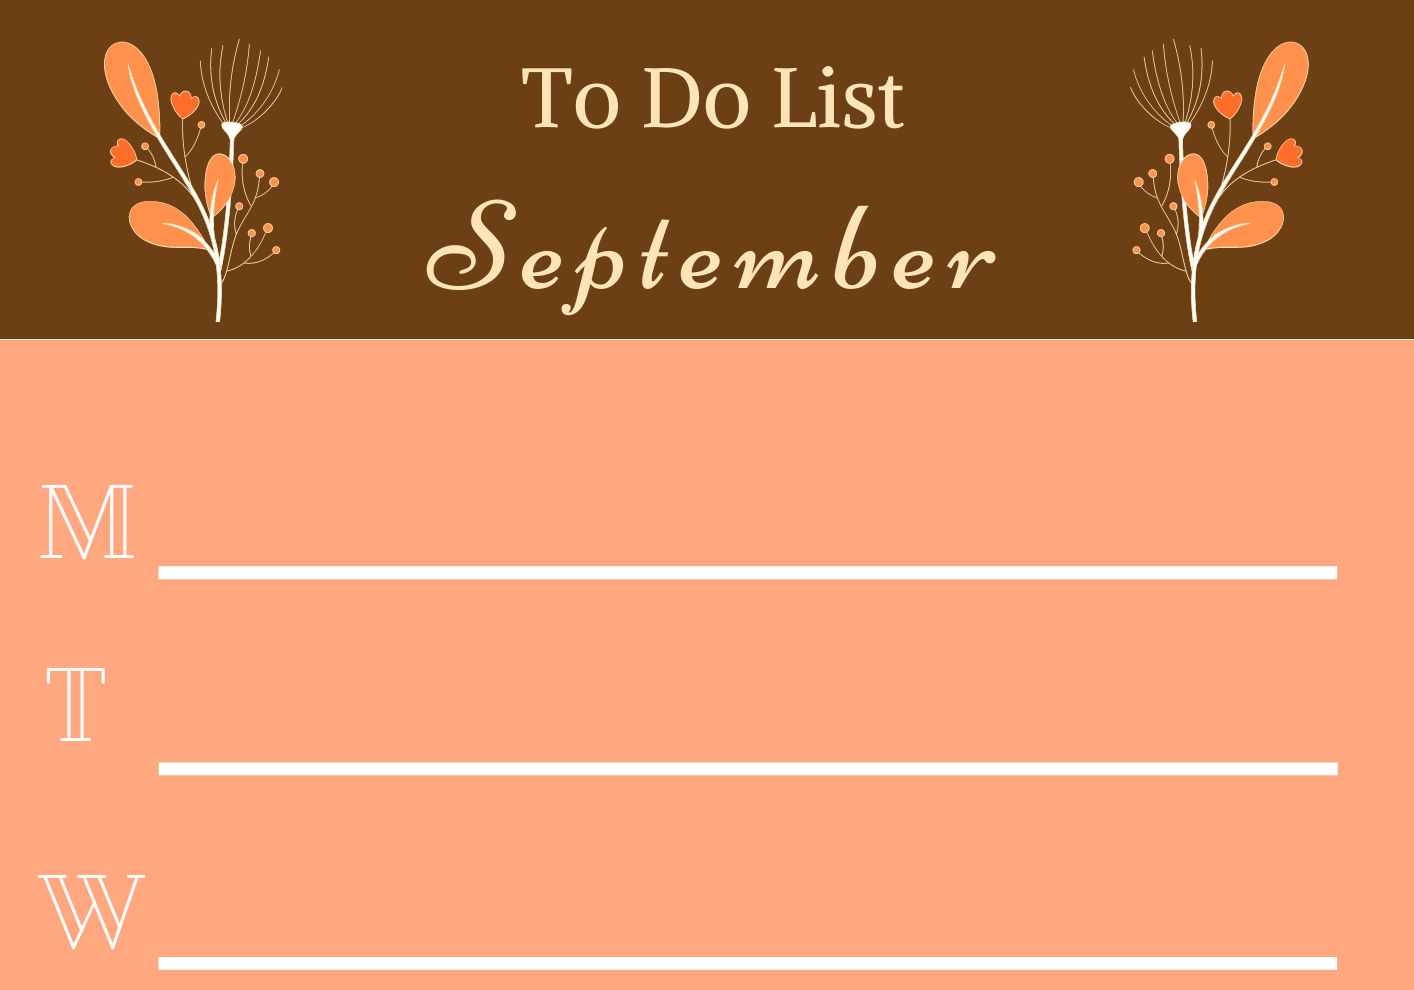 To-do list in September